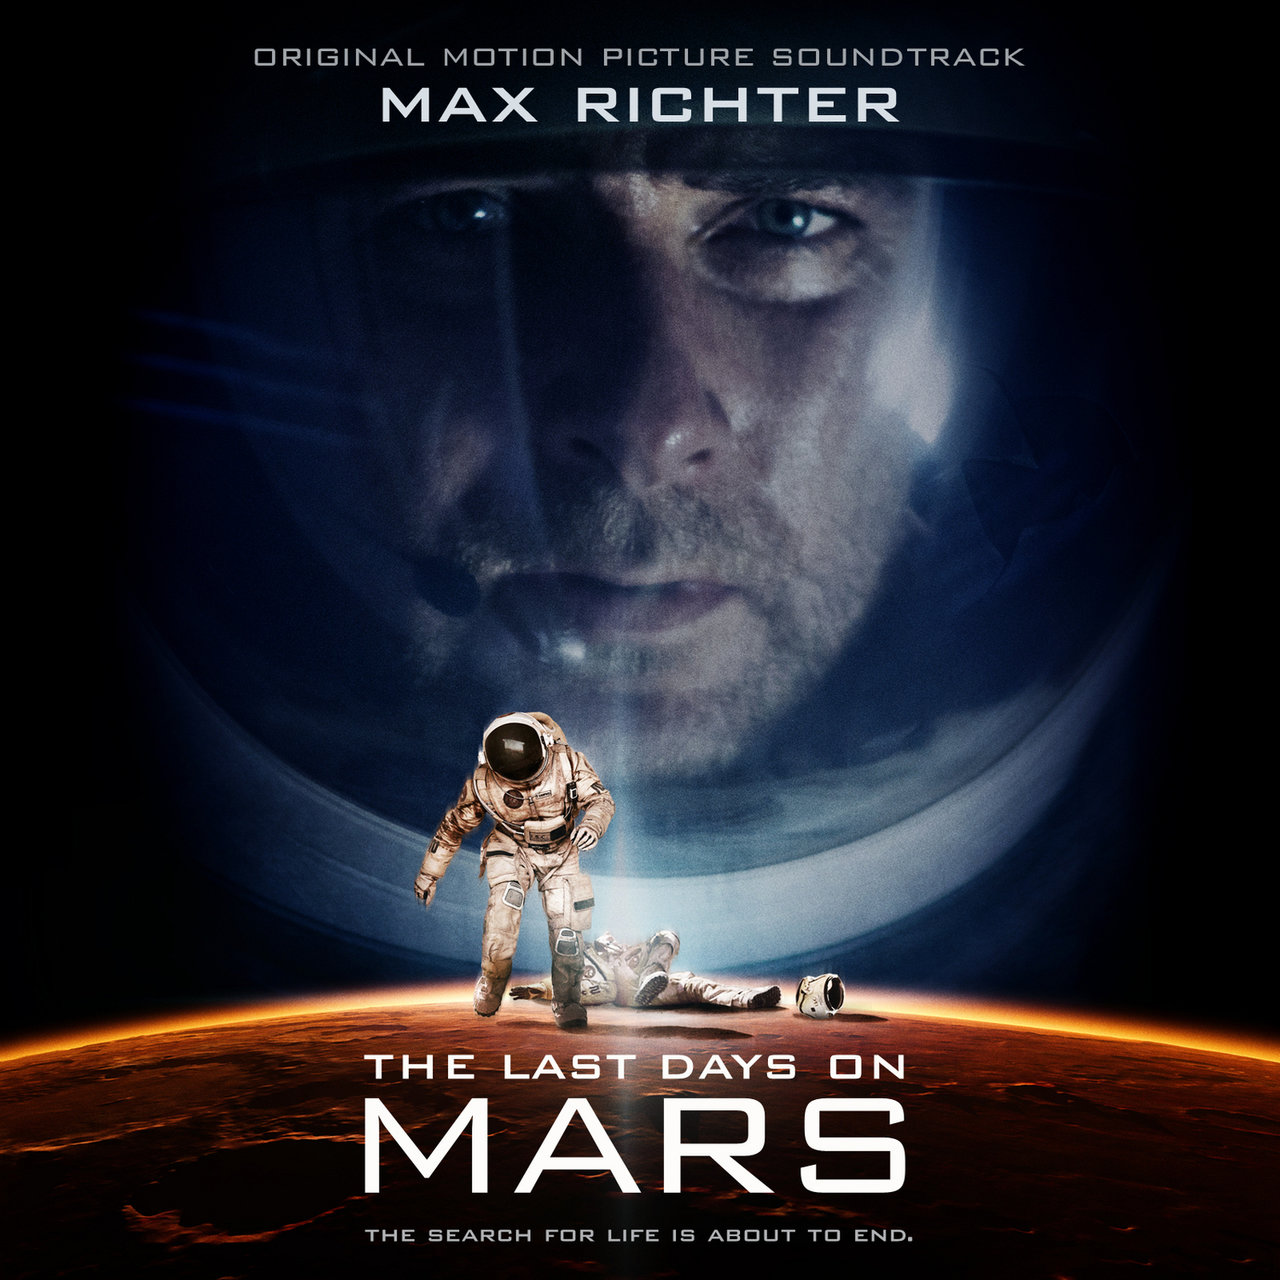 Last Days on Mars: Original Motion Picture Soundtrack